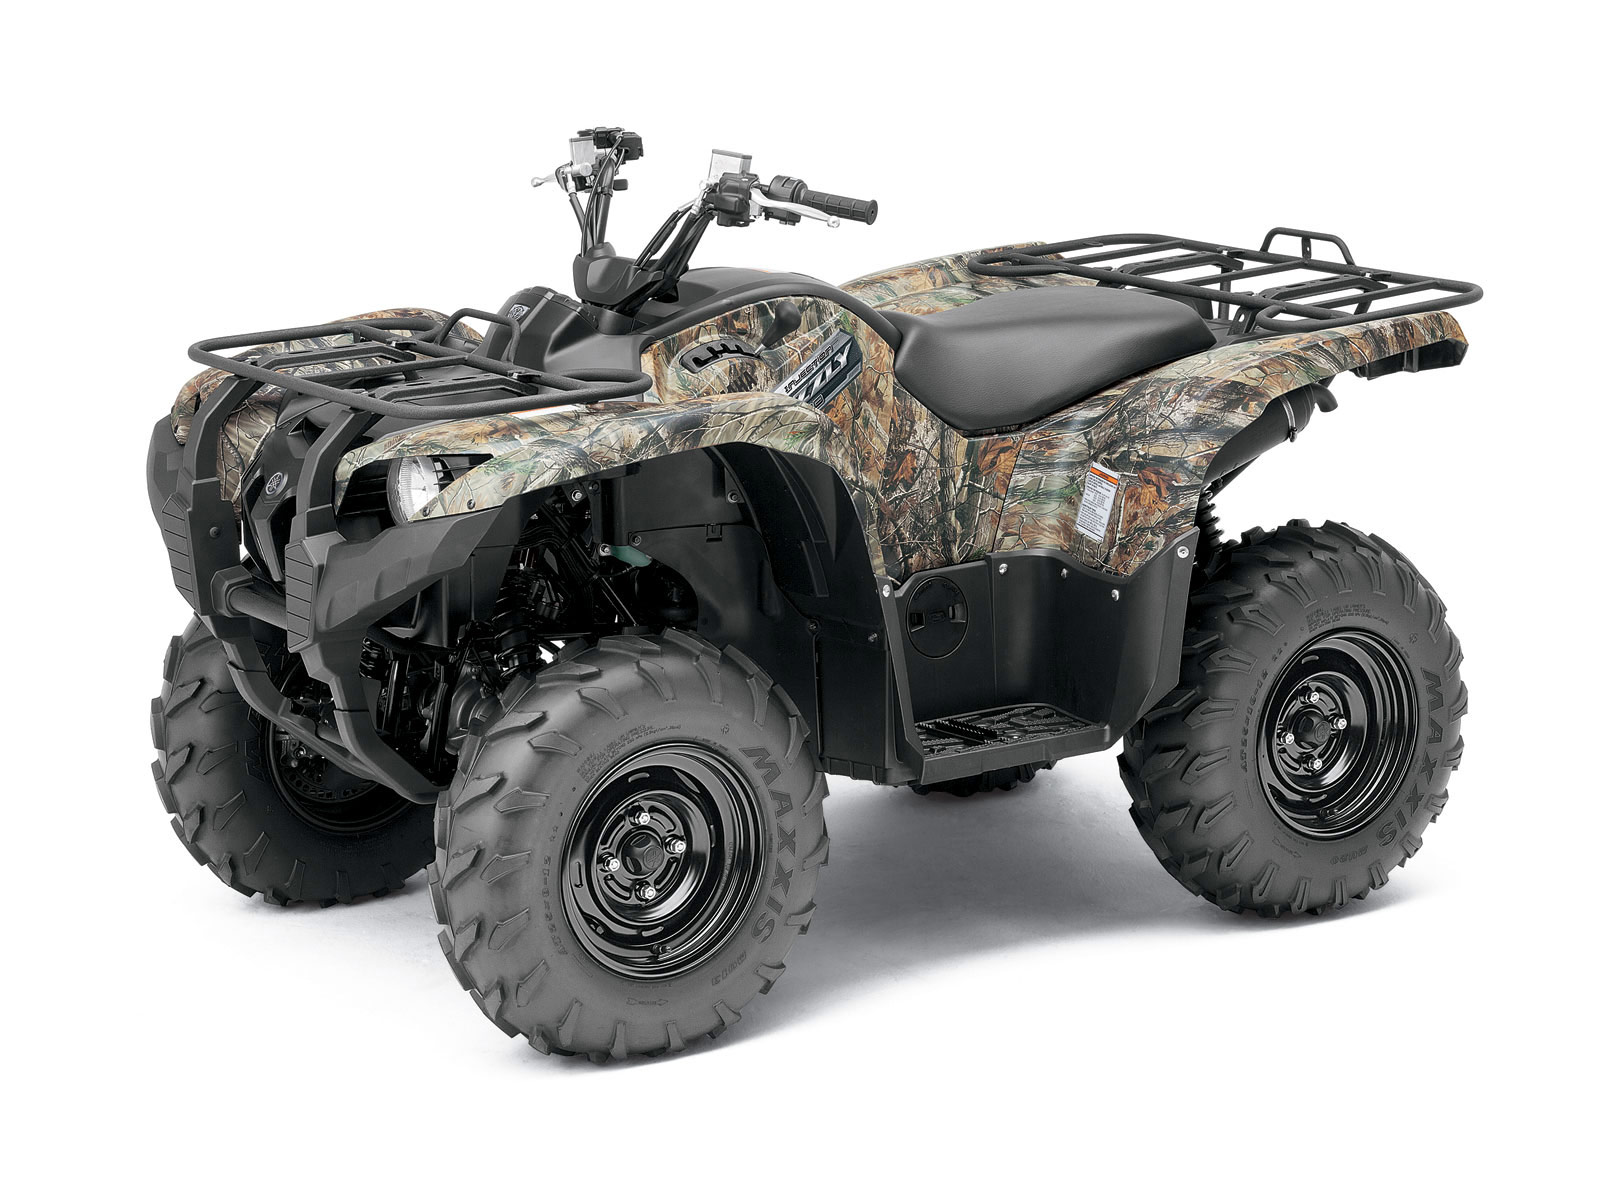 2012 yamaha grizzly 700 fi auto 4x4 atv pictures review for Yamaha grizzly atv